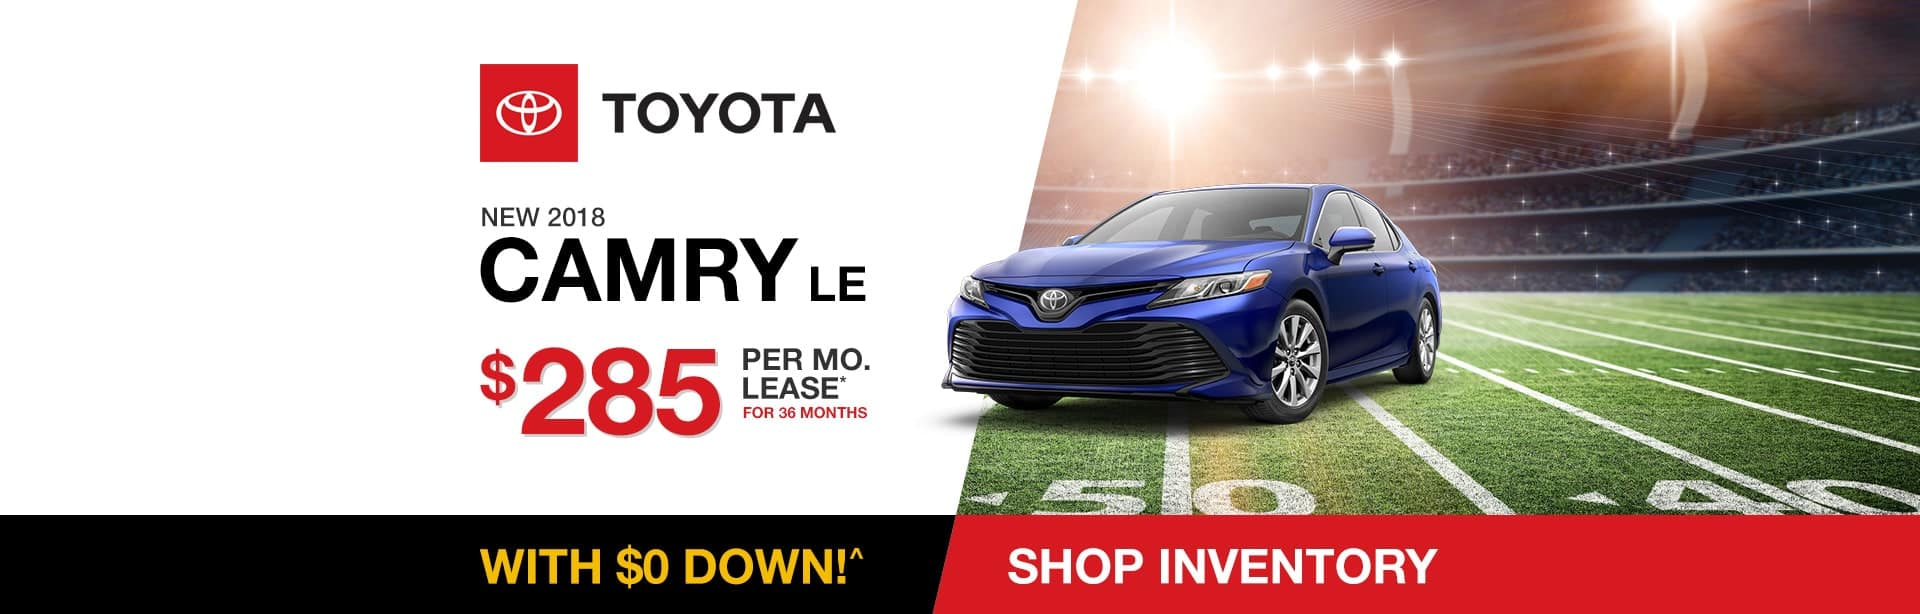 Toyota Camry Lease Special near Indianapolis, Indiana